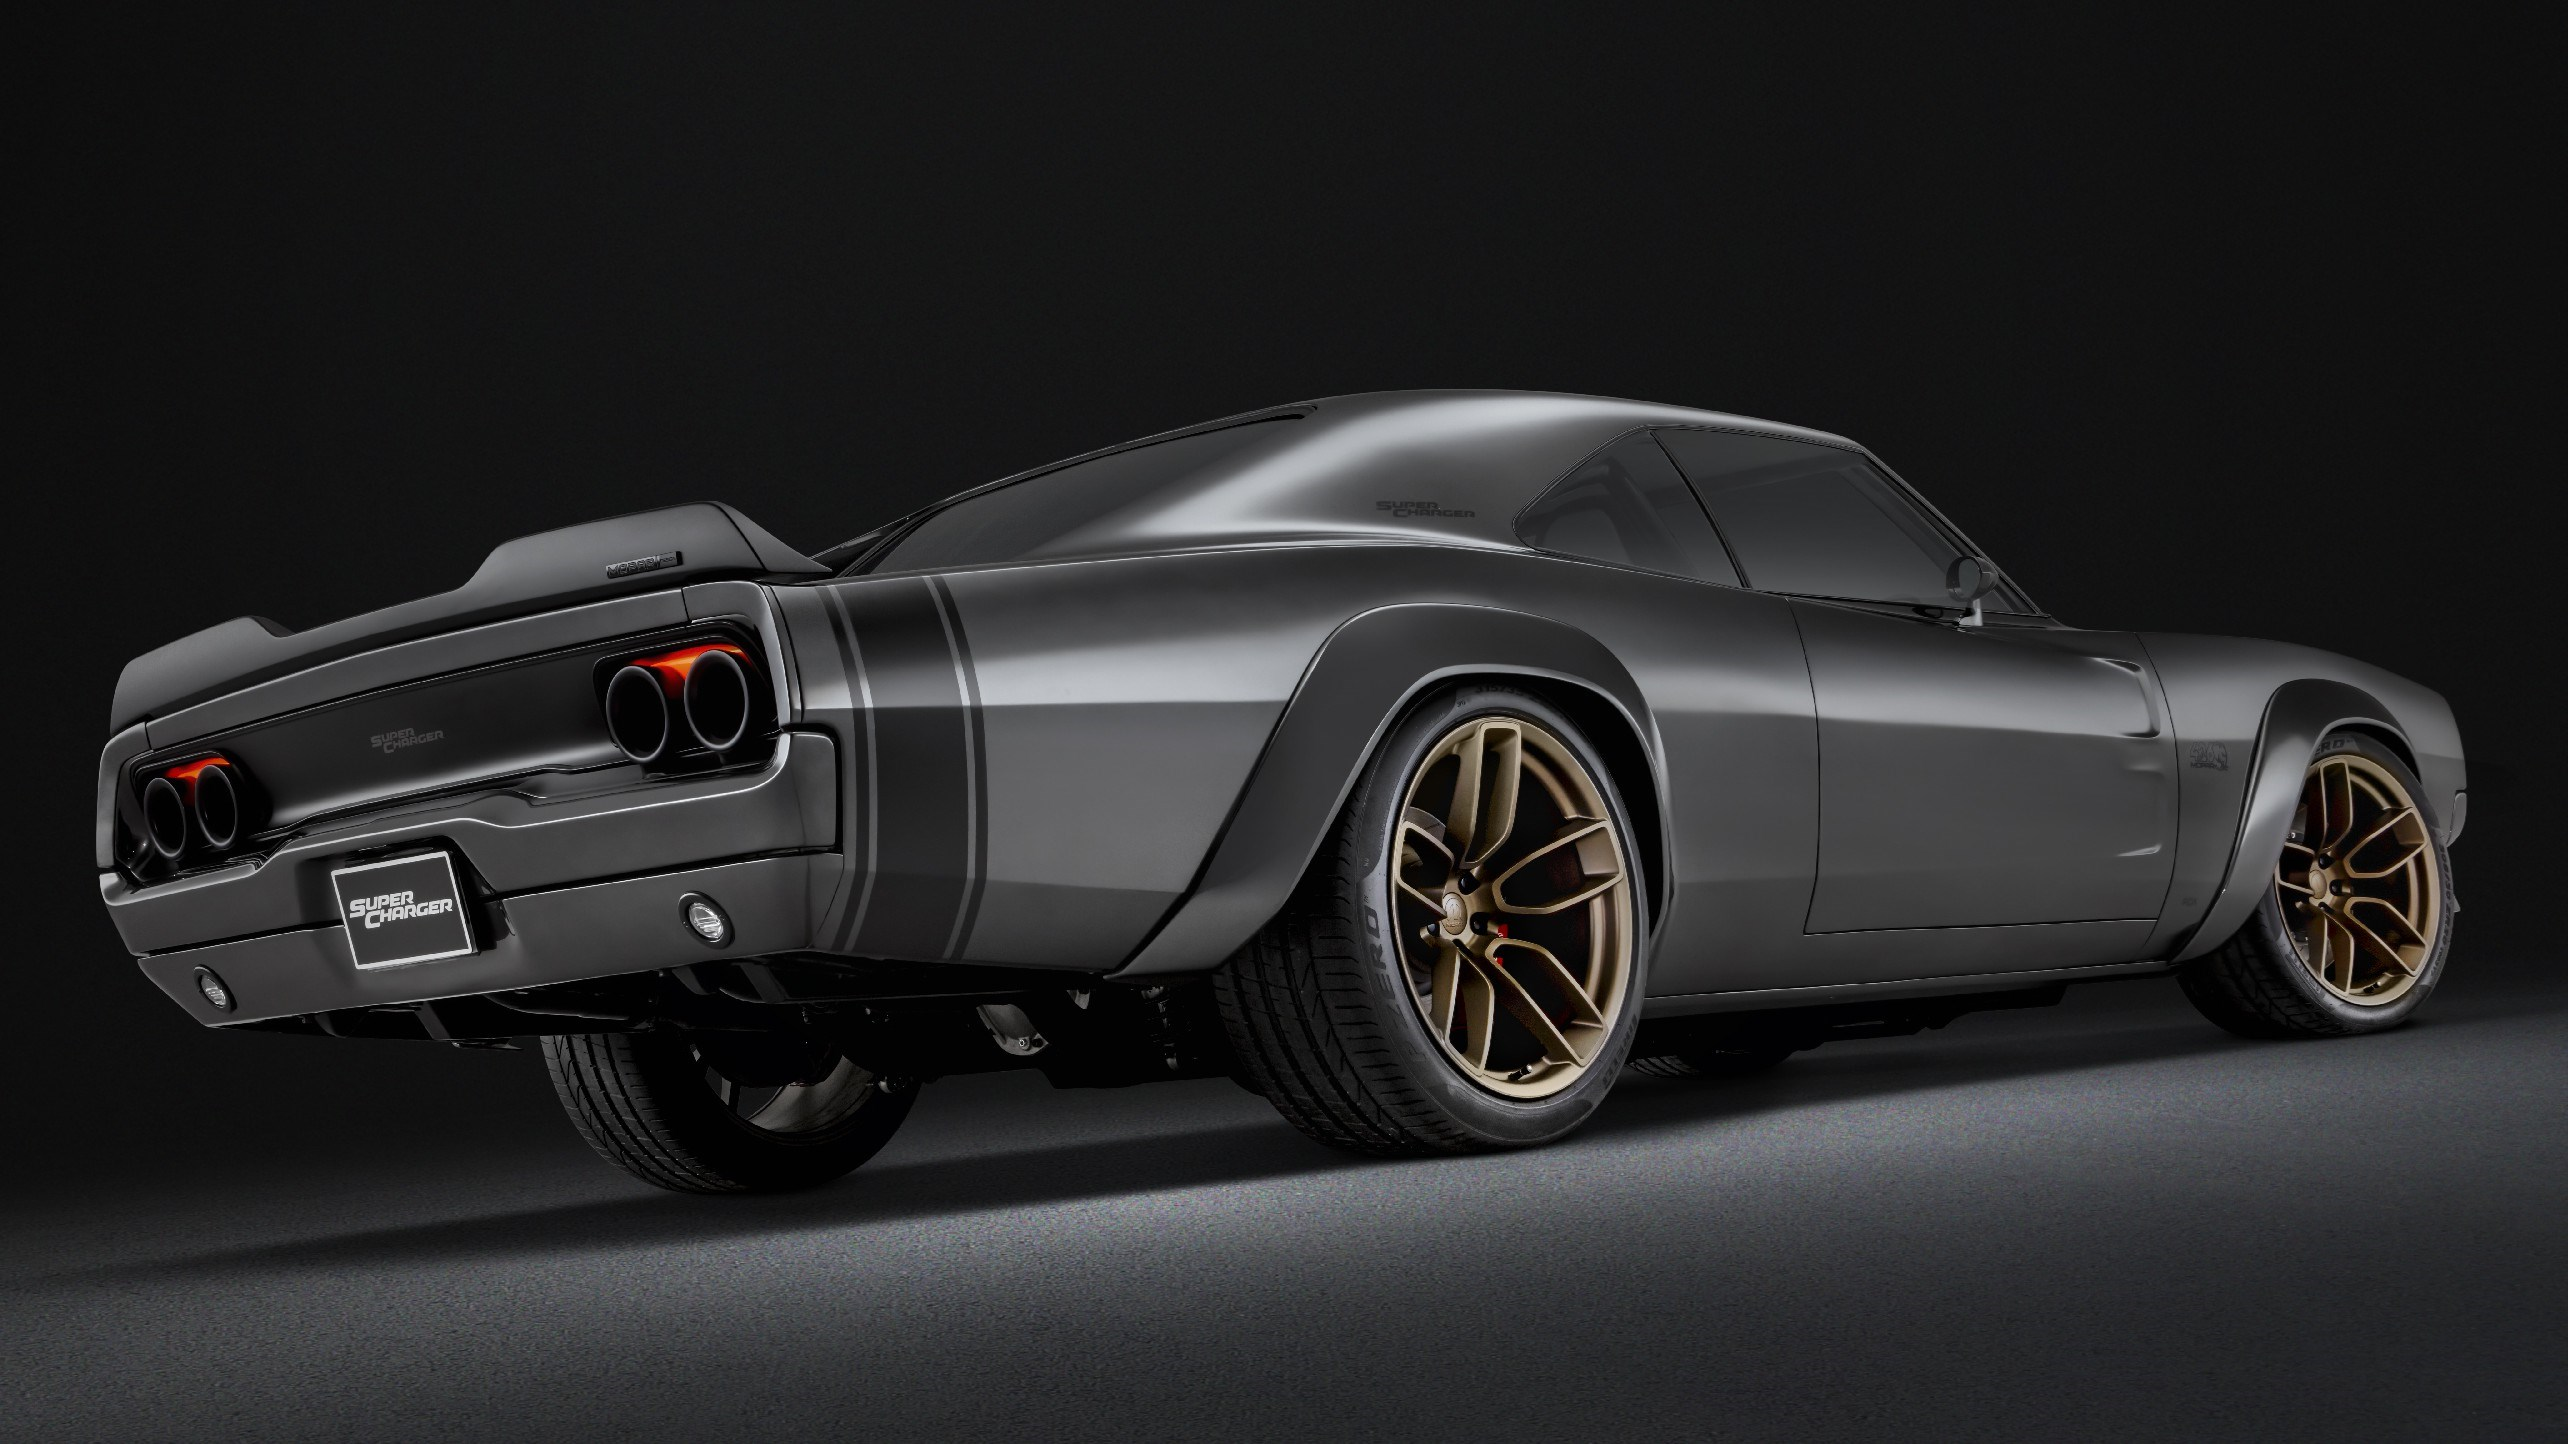 Mopar Outs Super Charger With 1,000hp Hellephant V8 Thumbnail